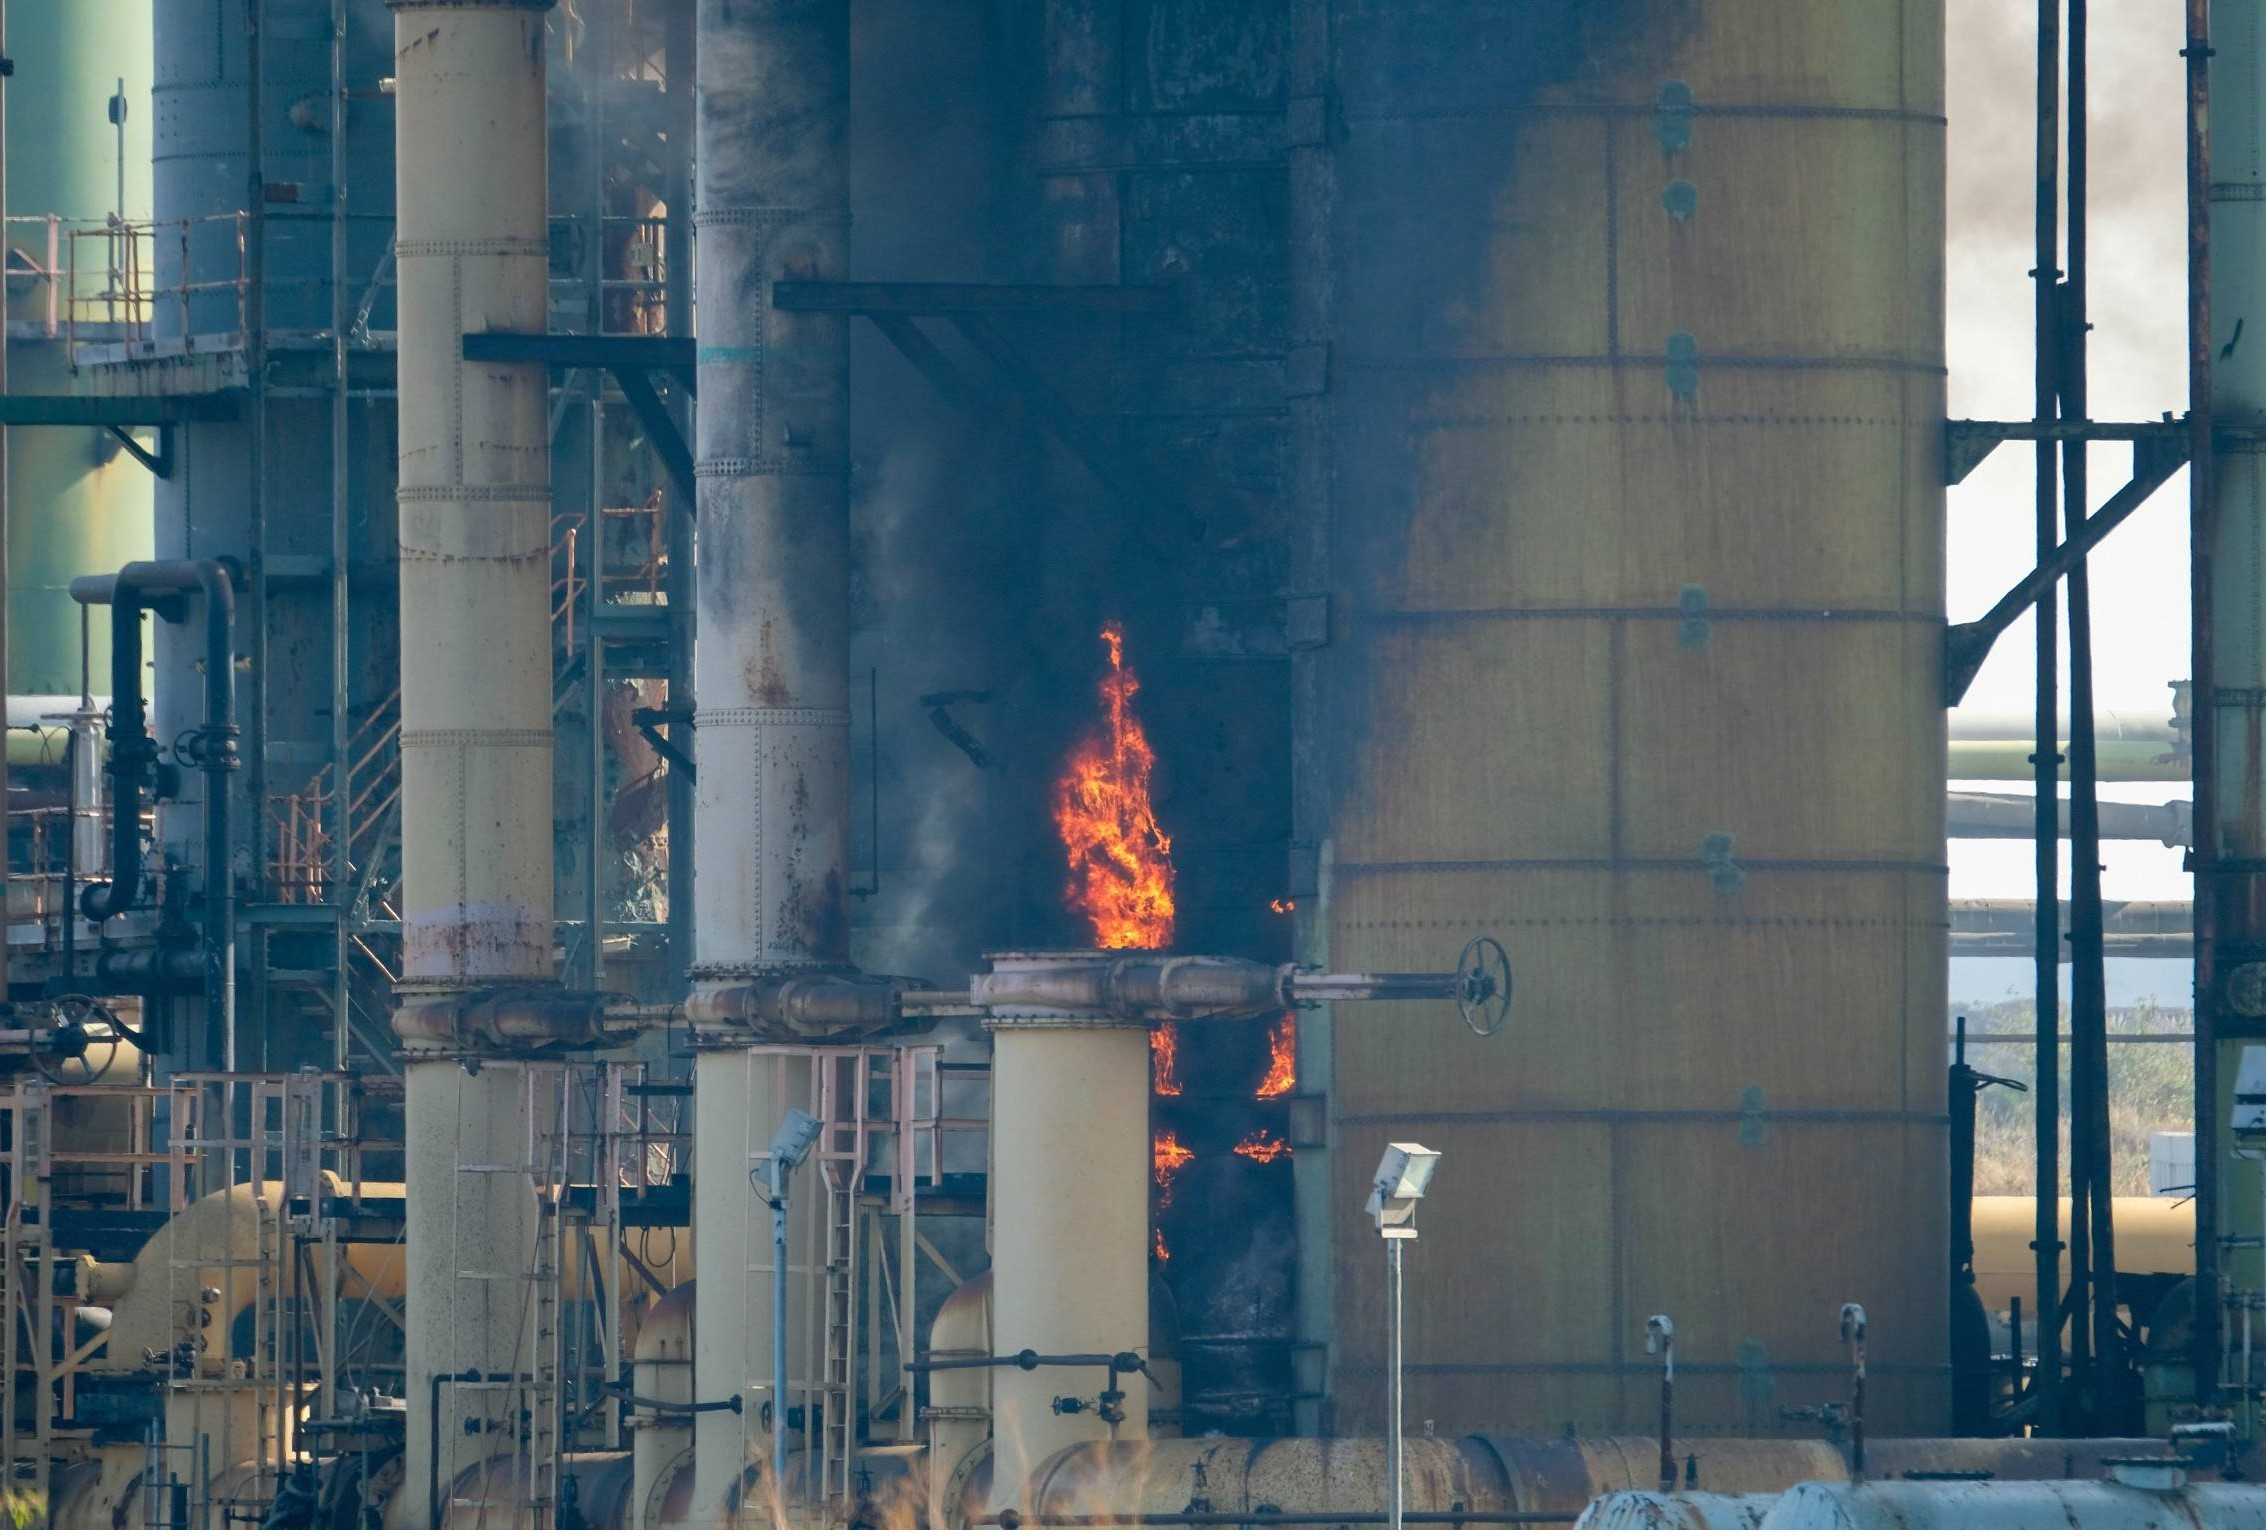 Fresh incident in early hours at former SSI site in Redcar